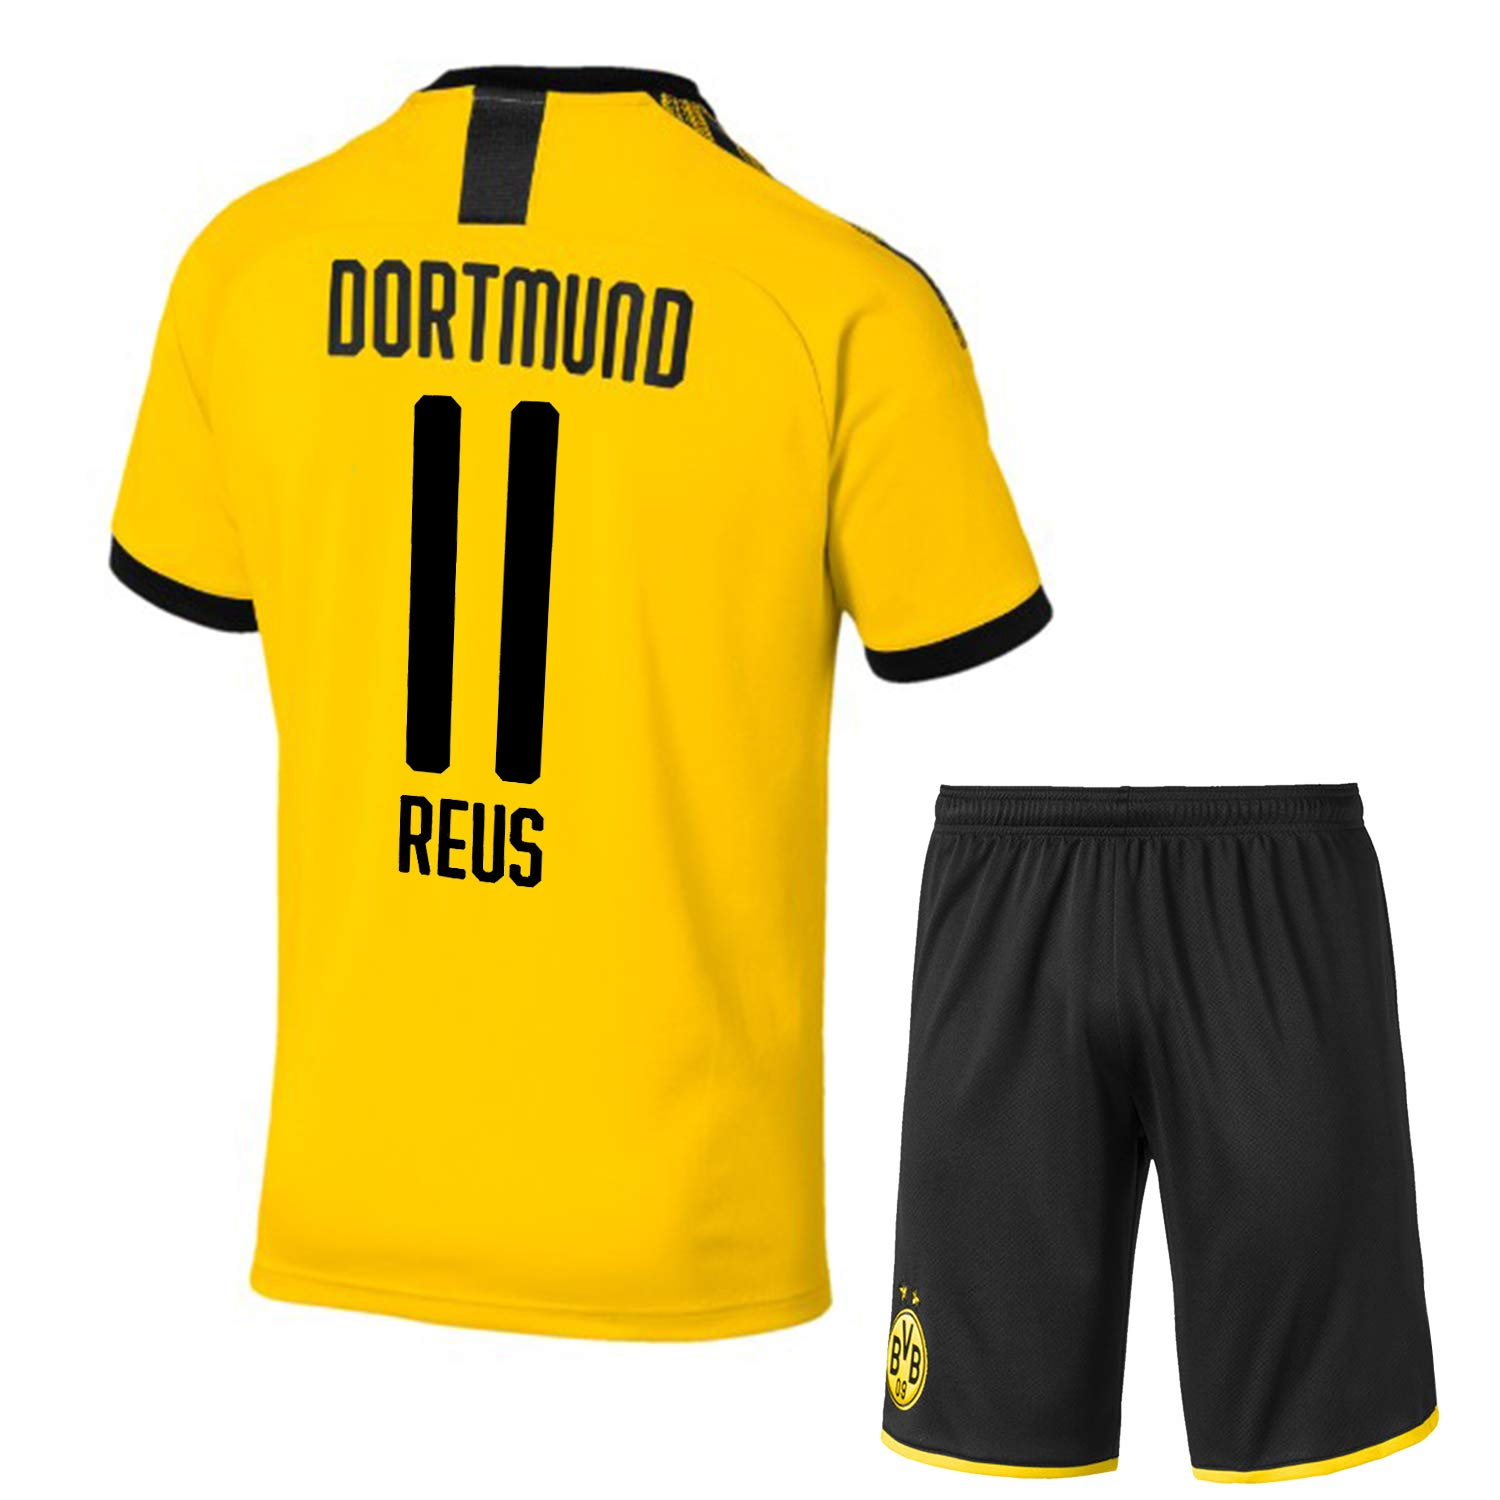 2018 19 Reus 11 Printed Bvb Borussia Dortmund Jersey Borussia Dortmund Half Sleeves Master Quality Away Football Jersey With Shorts Imported Master Quality With Bundes Liga Patch On Arm S Amazon In Sports Fitness